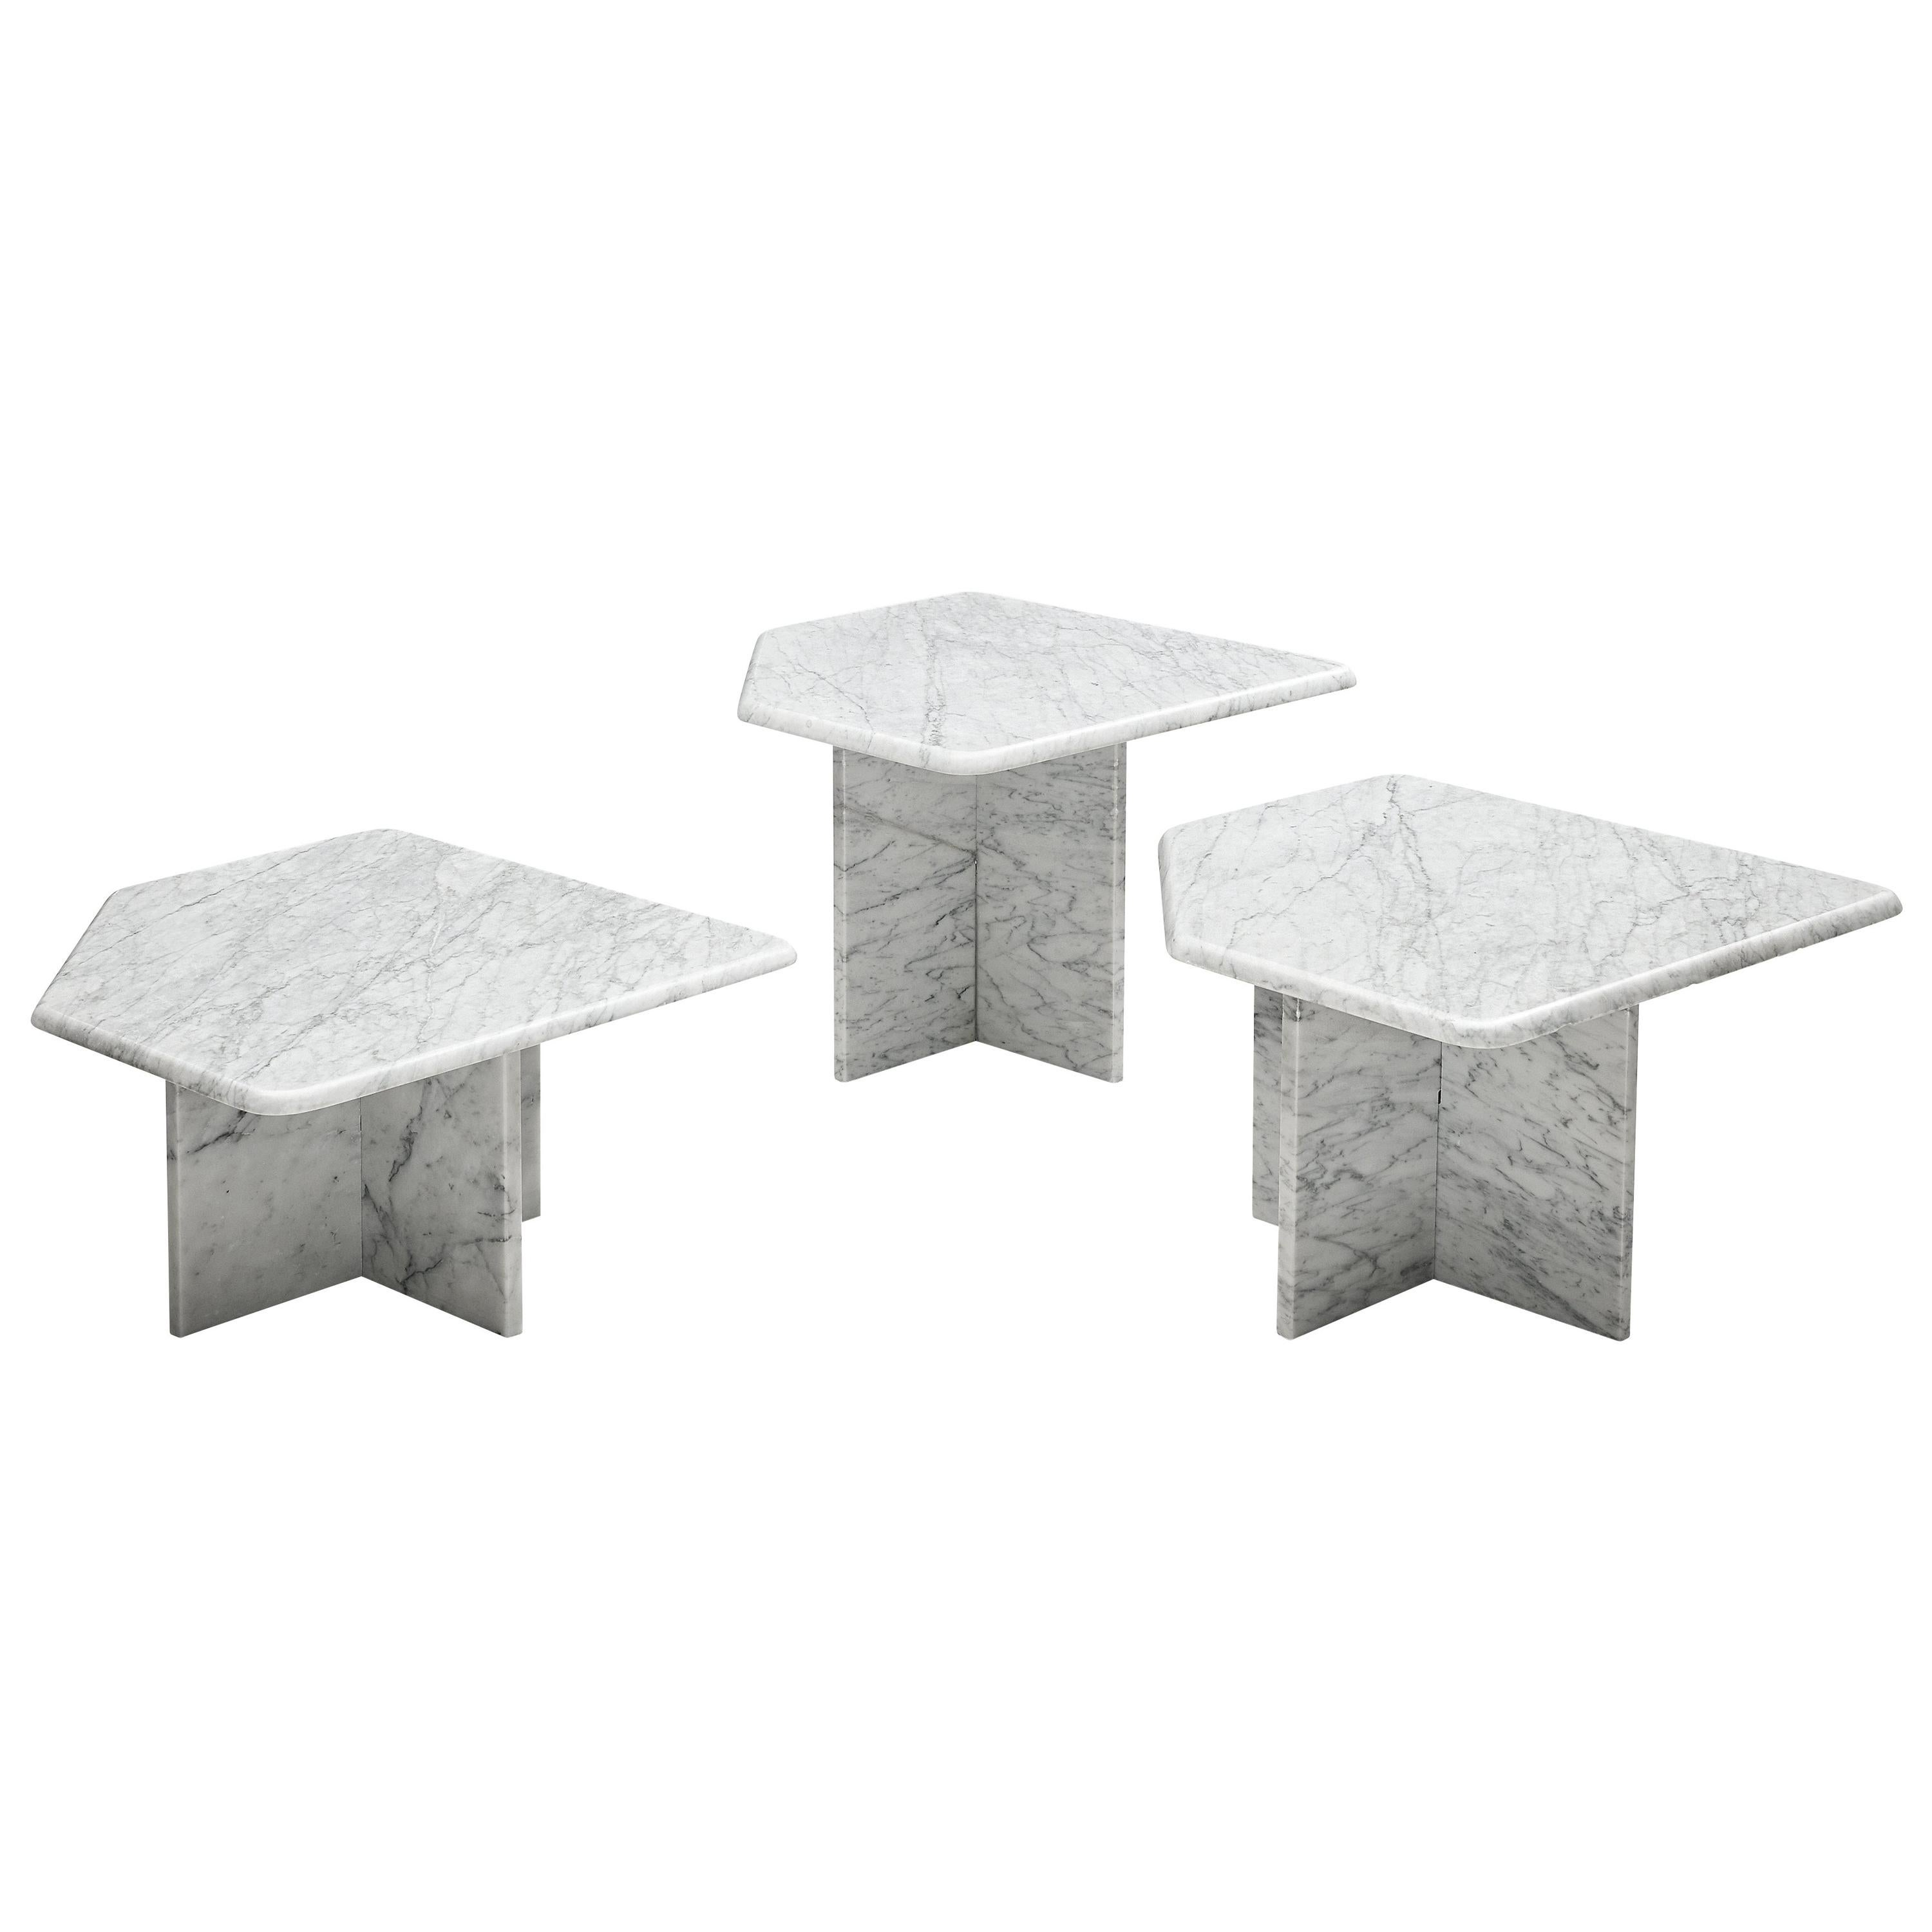 Set of three Sculptural Side Tables in White Marble